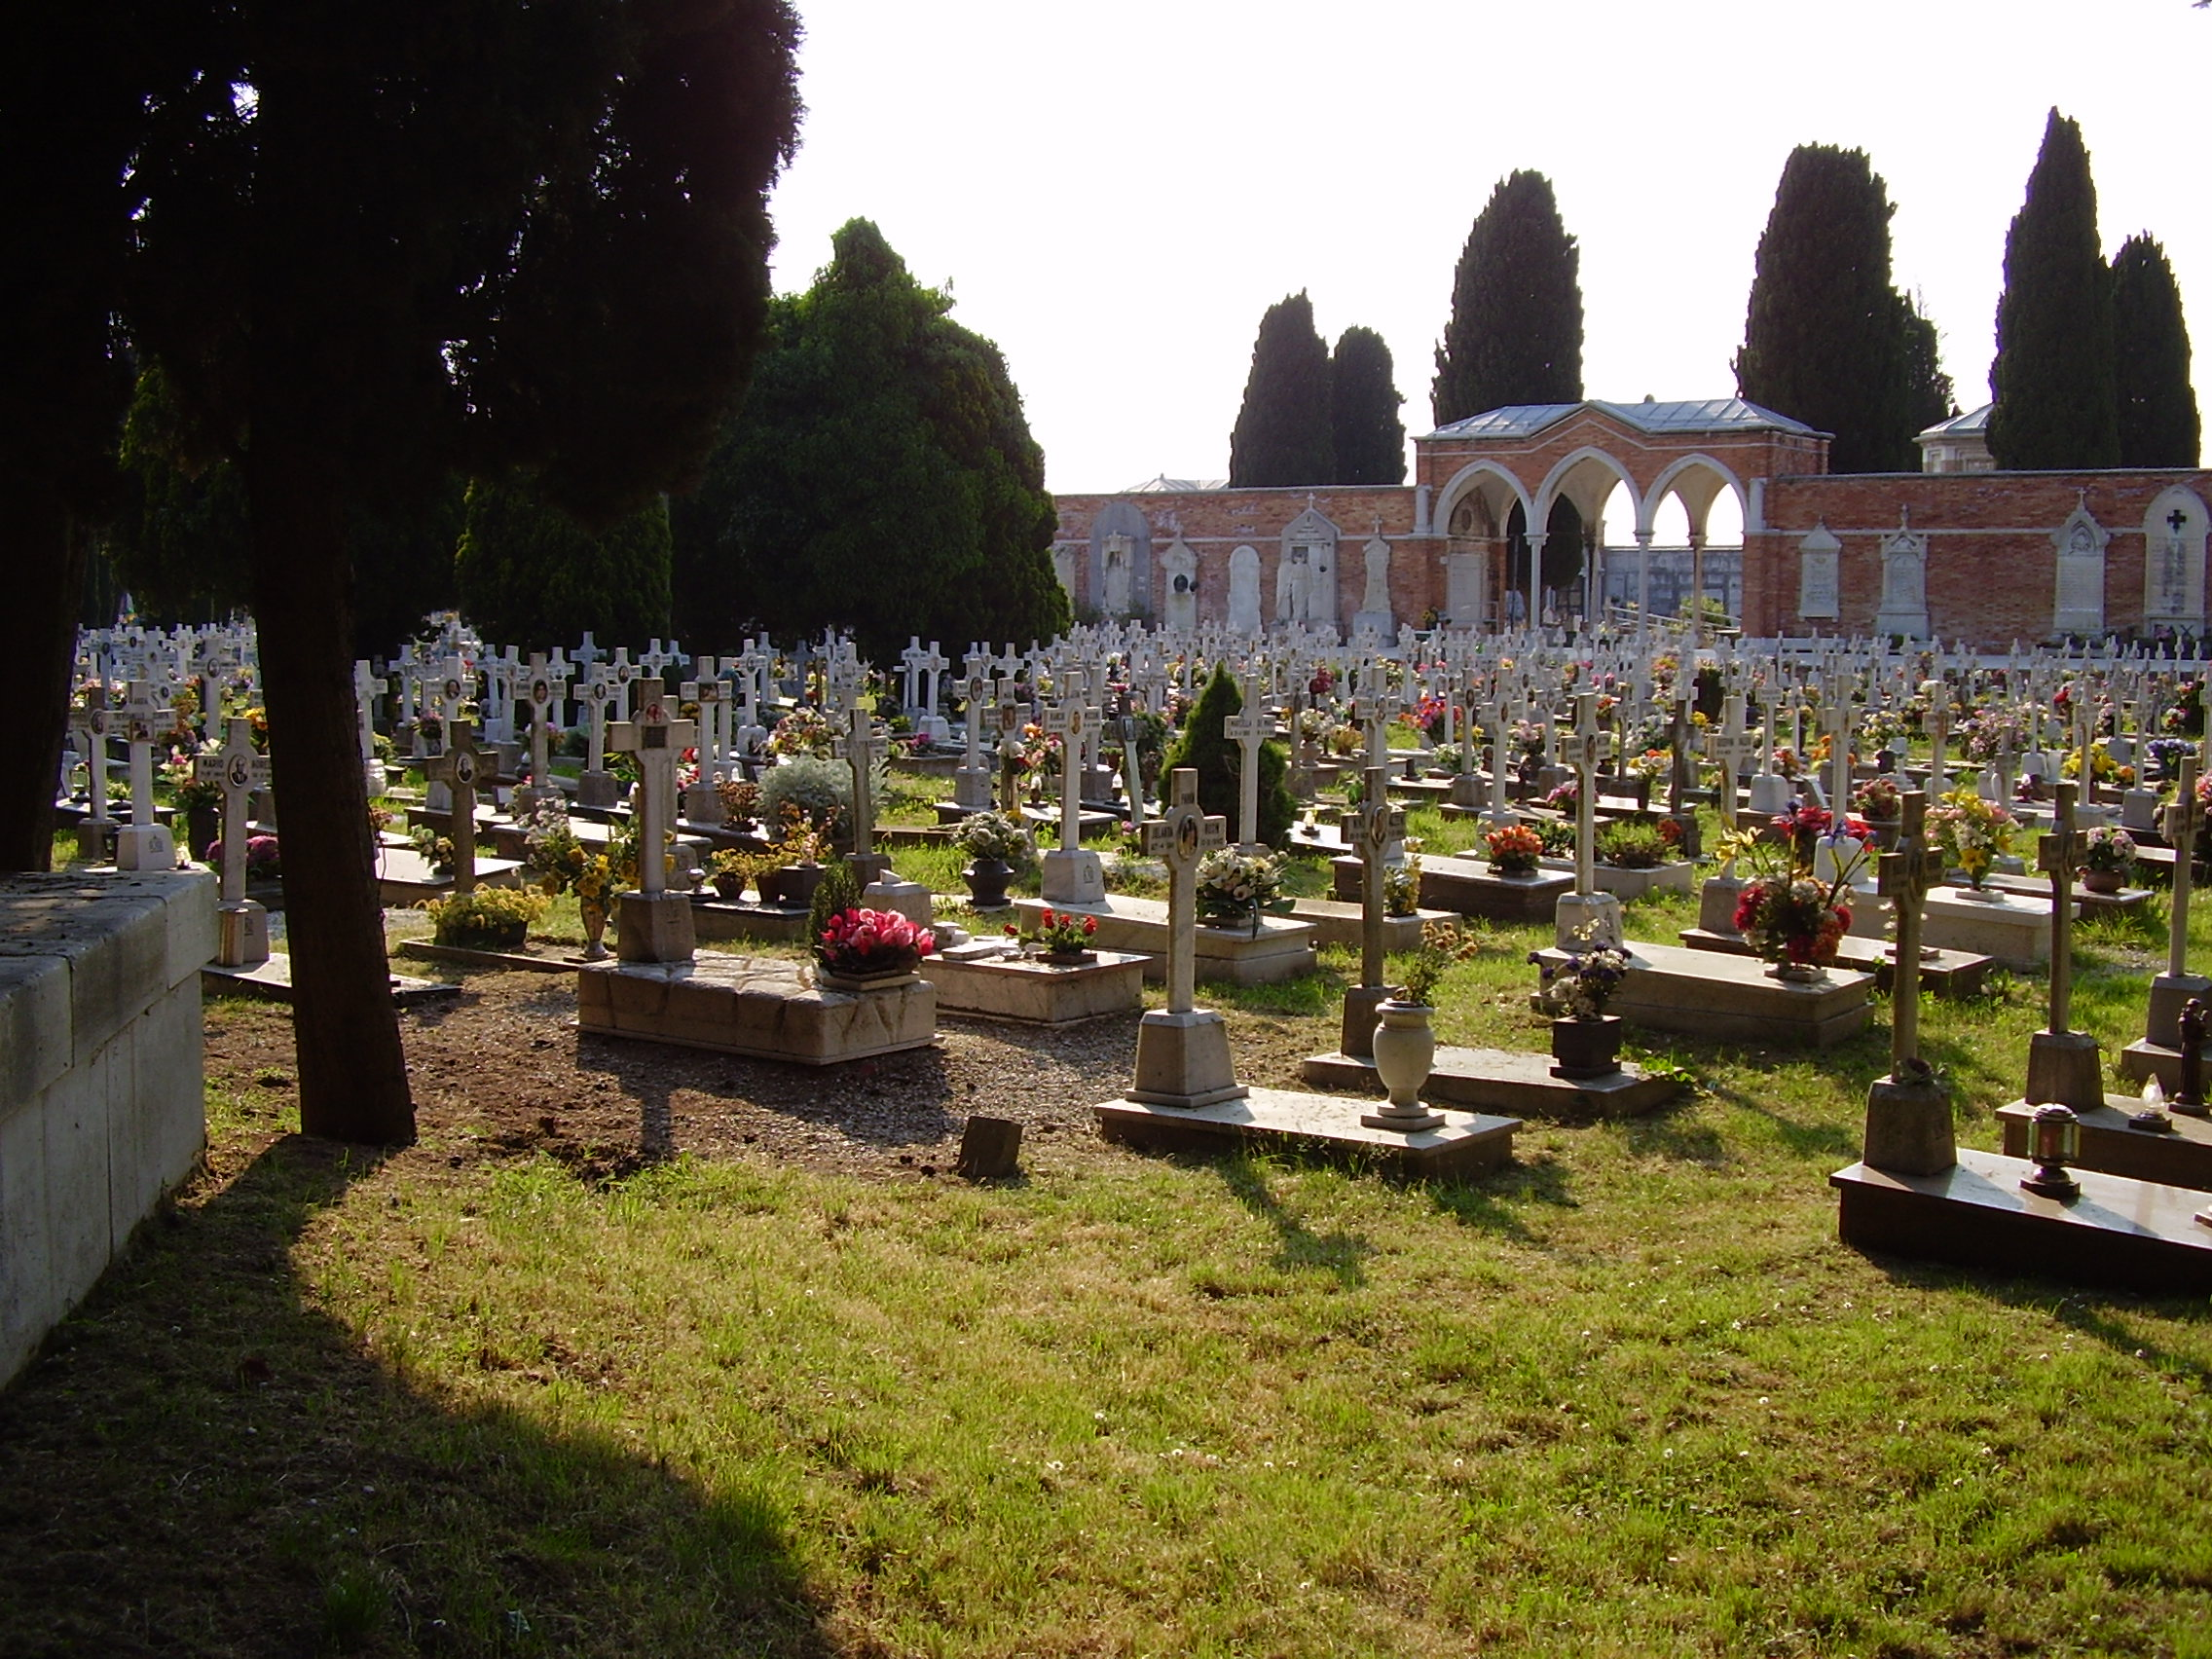 Visit of the monumental cemetery of Venice San Michele